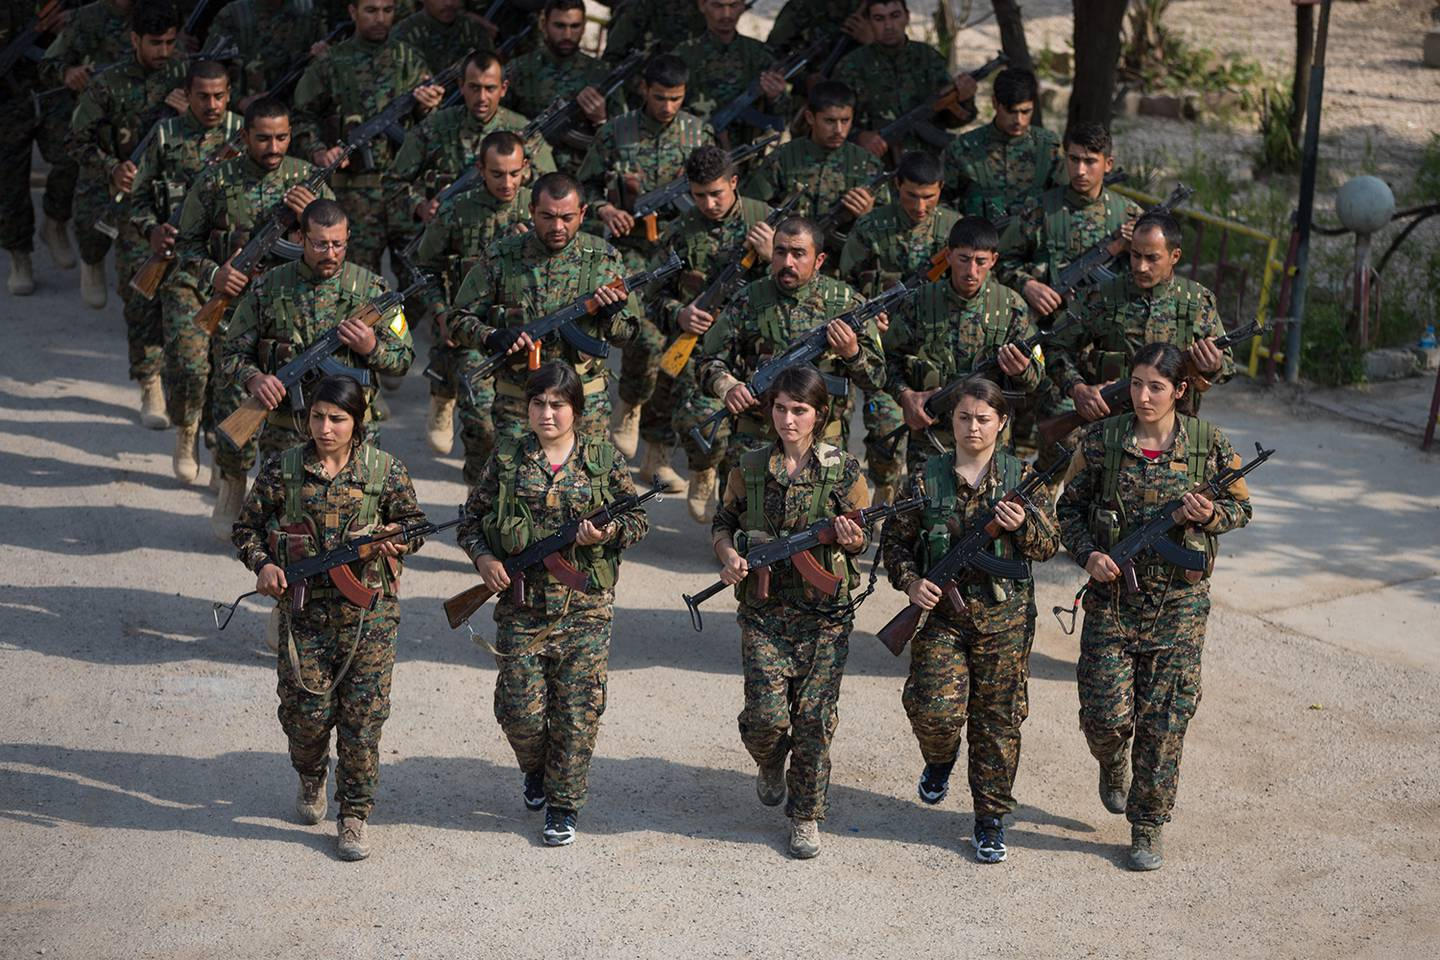 Members of the Syrian Democratic Forces stand in formation